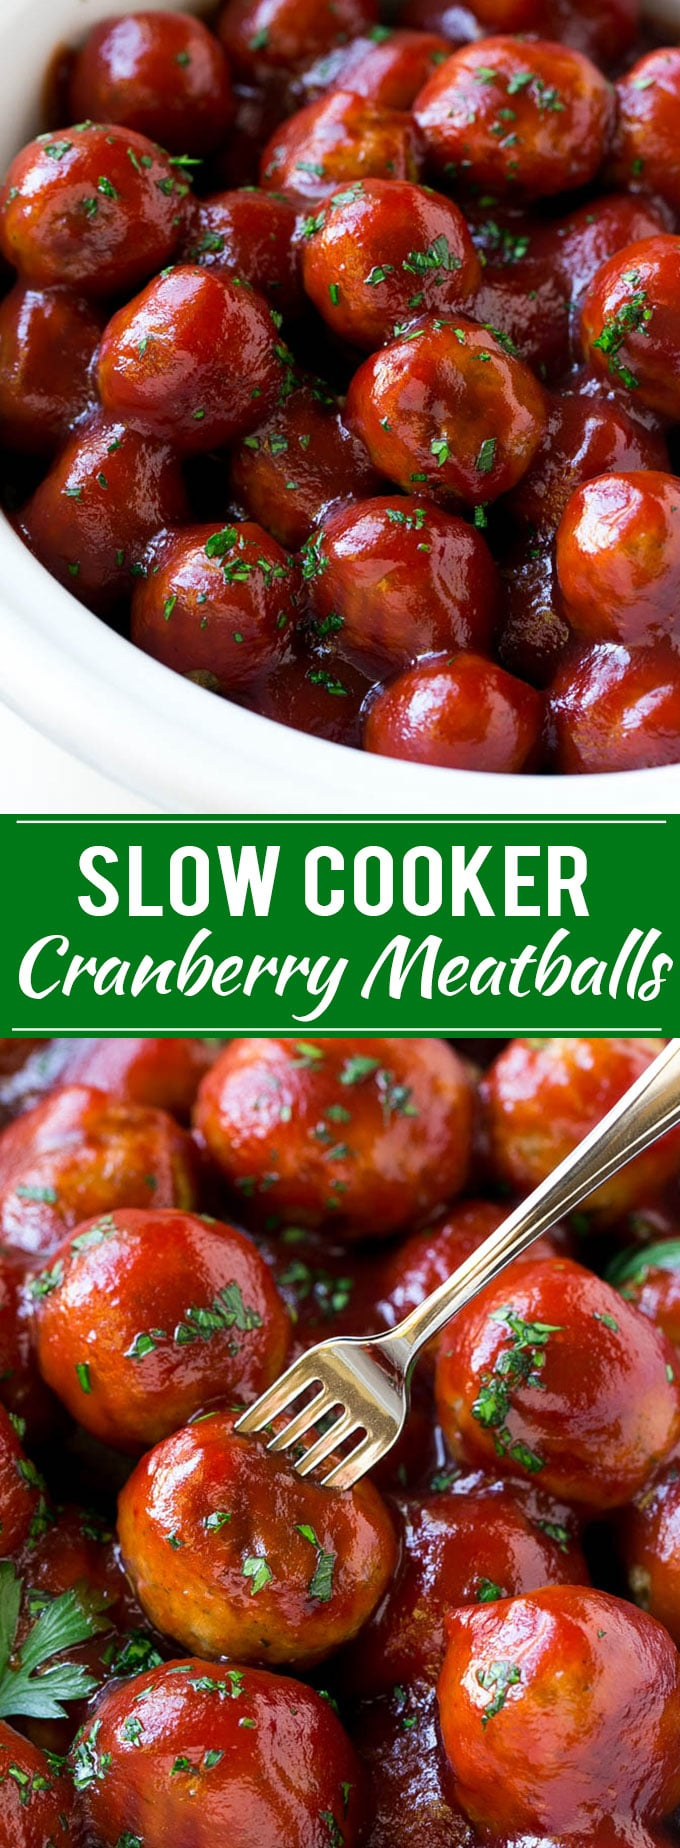 Cranberry Meatballs Recipe | Slow Cooker Meatballs | Slow Cooker Appetizer | Crockpot Meatballs